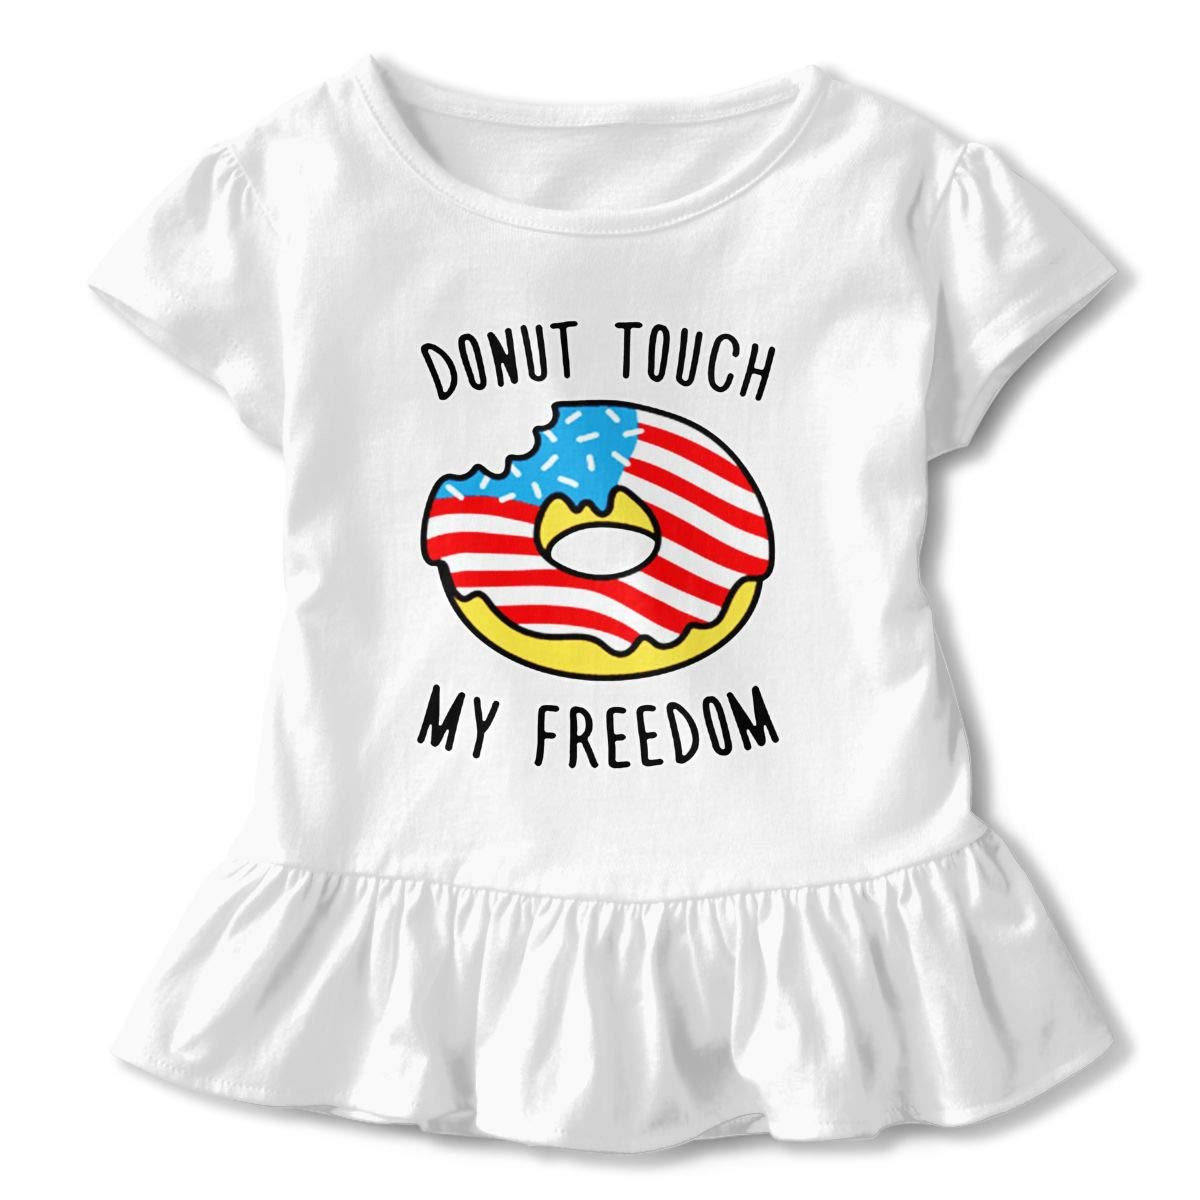 Donut Touch My Freedom Baby Girls Cozy Ruffle Top T-Shirt Flounces Dress Toddler Girls Summer Tops